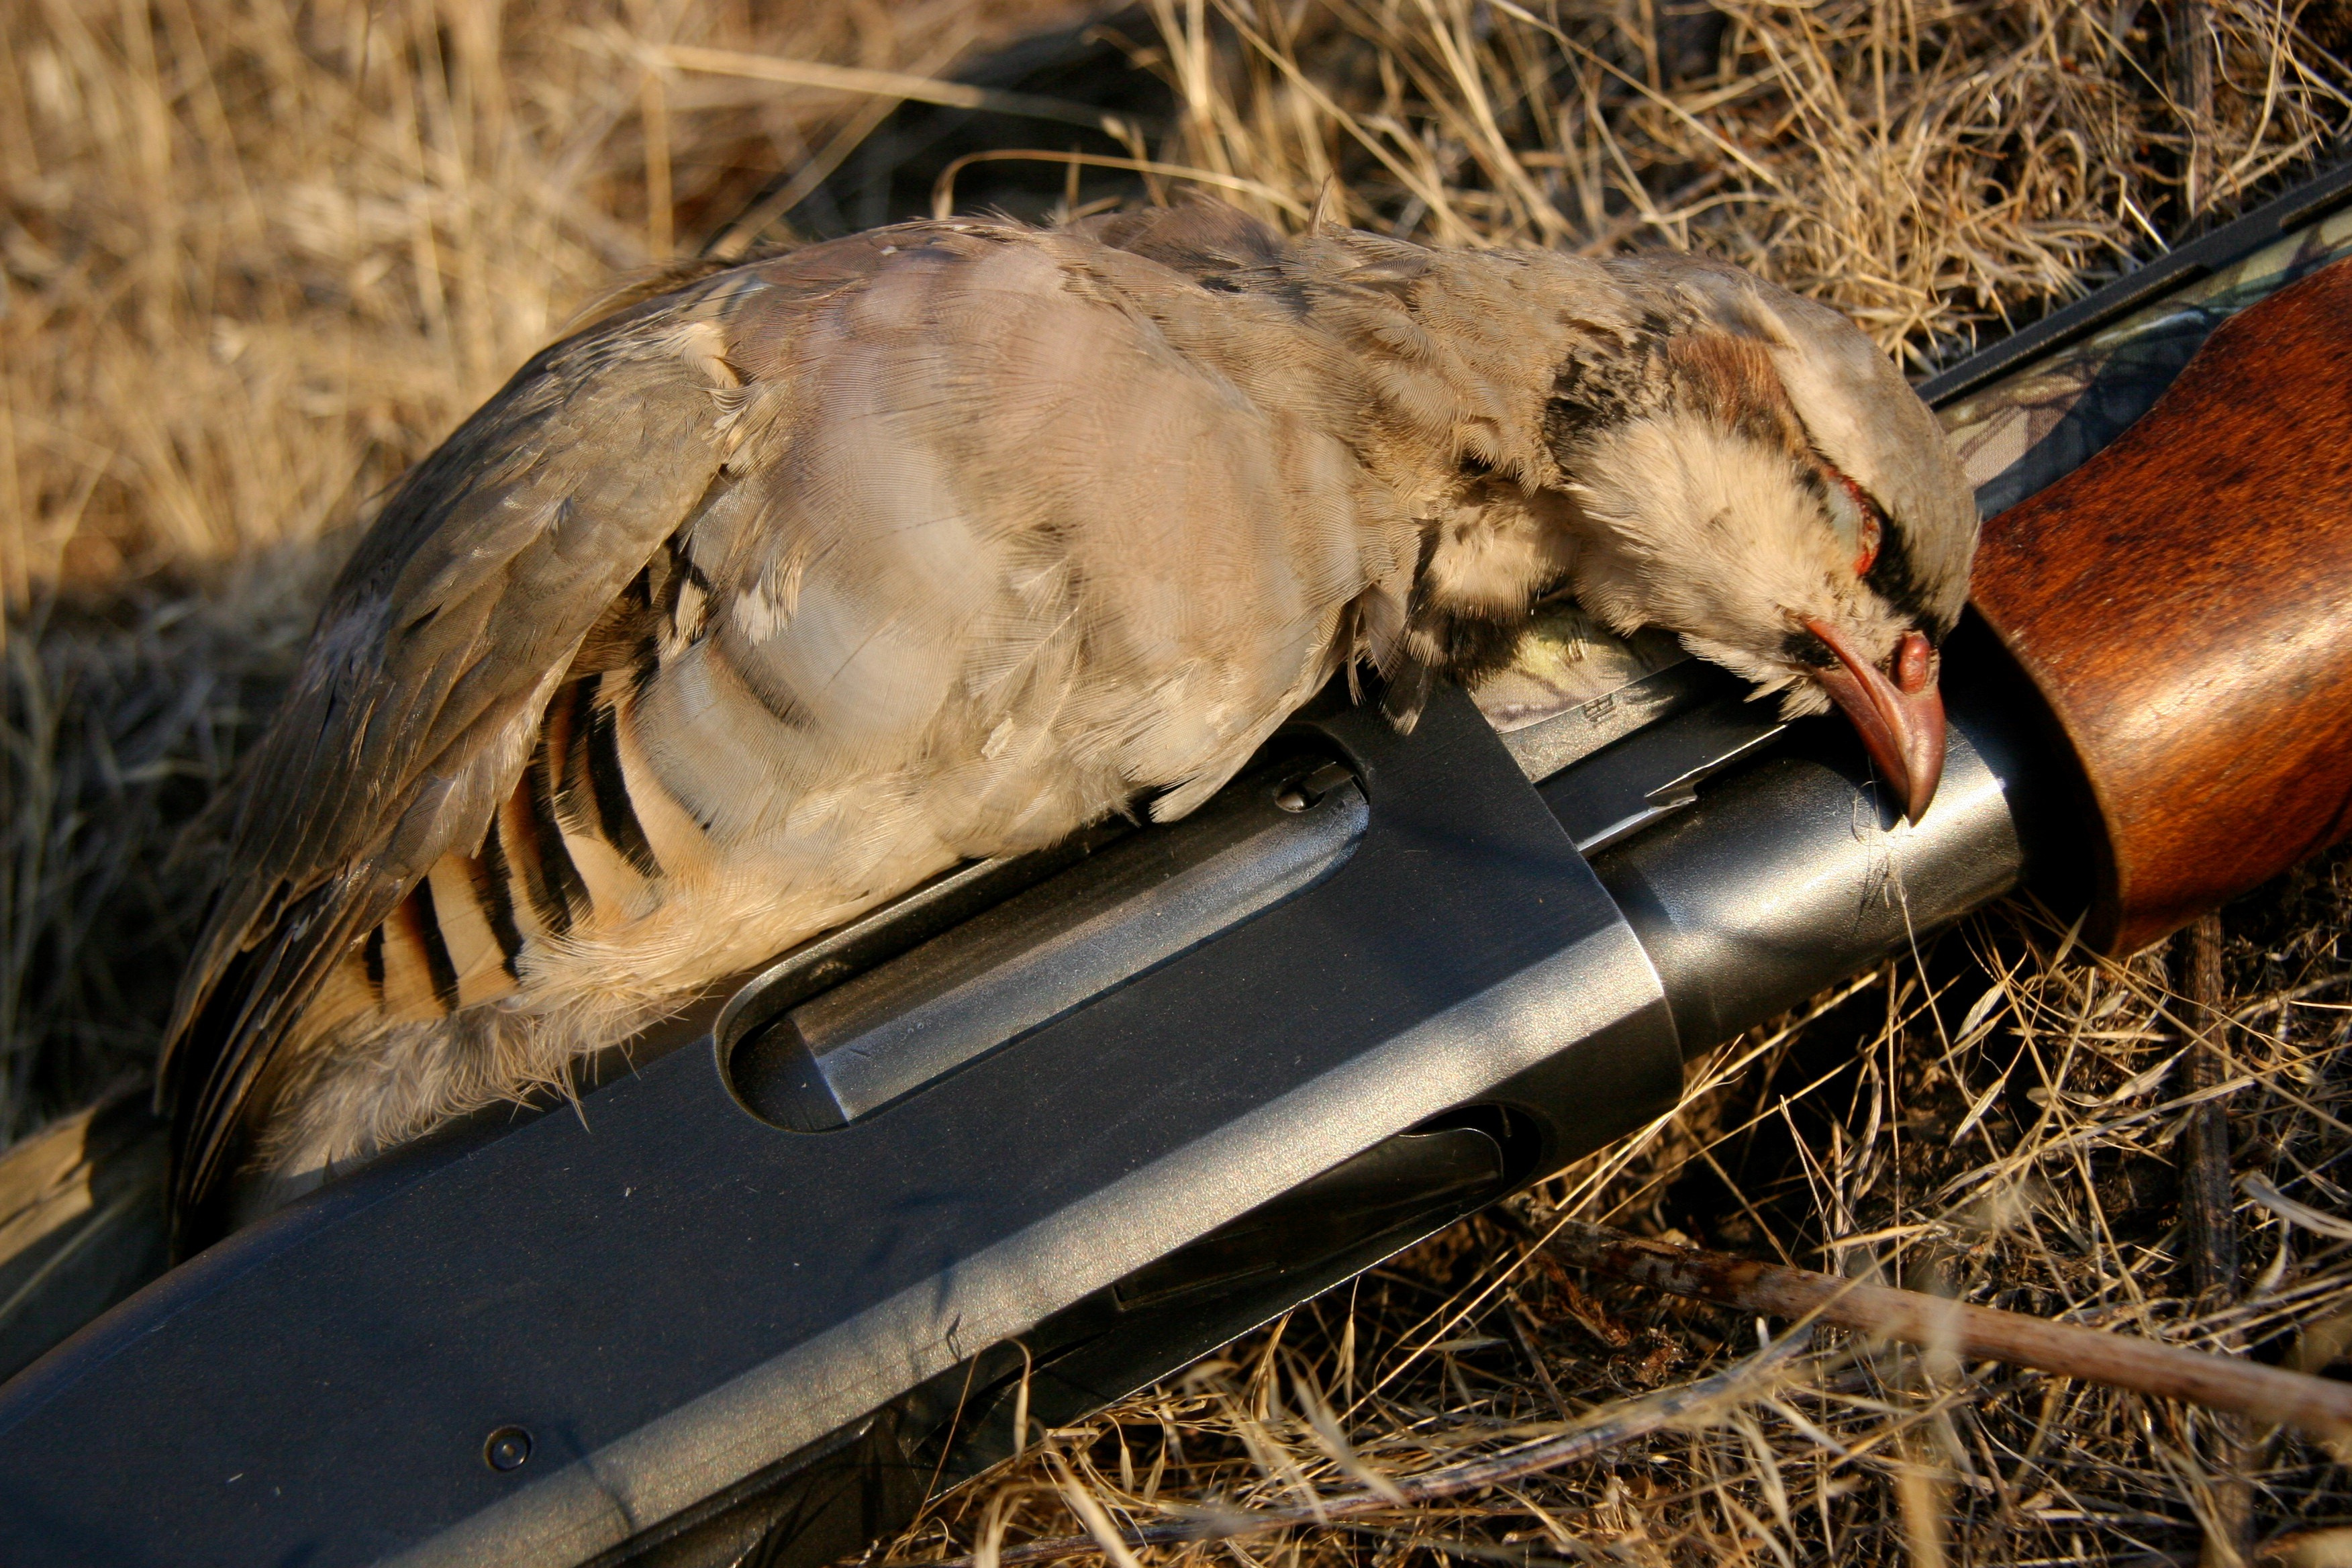 Chukar and shotgun, cc-by Roger Phillips